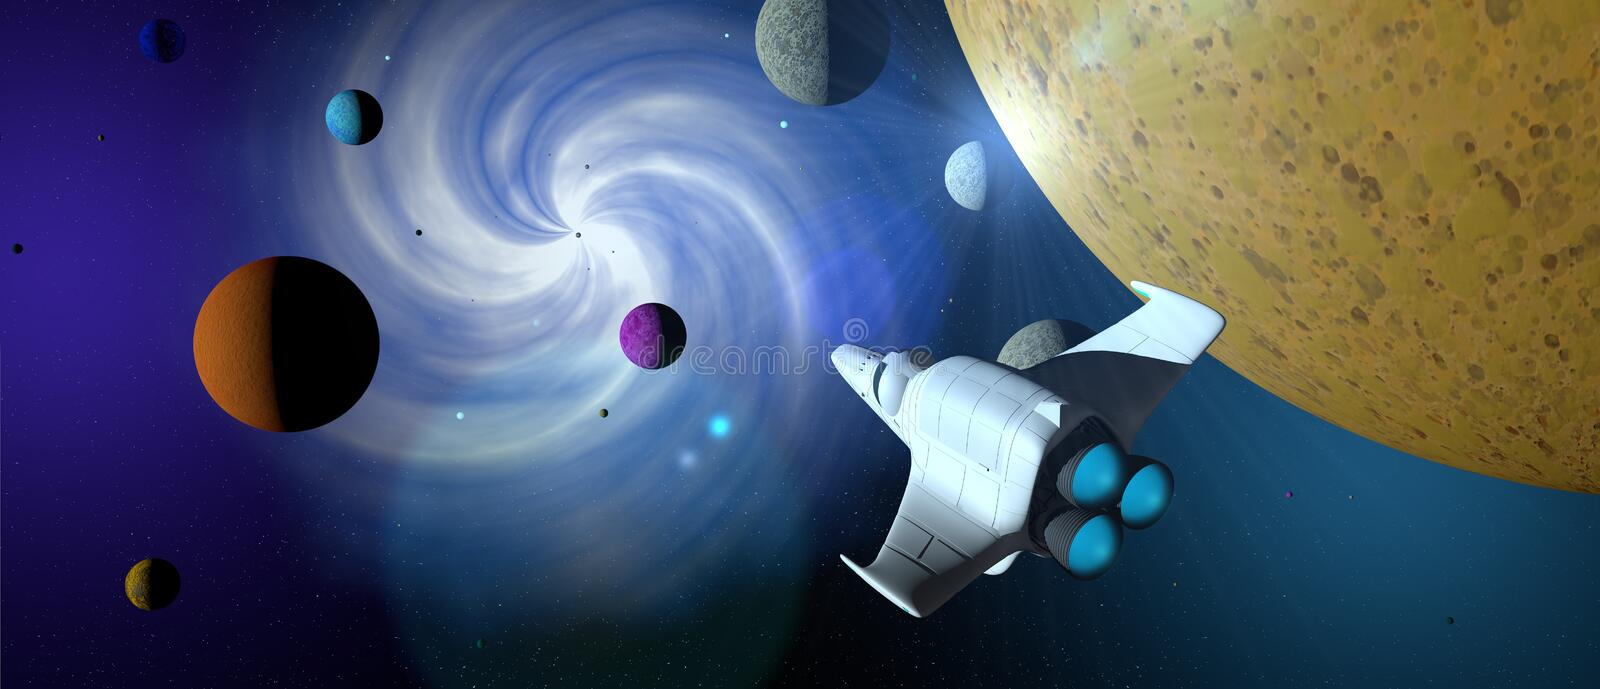 Fantasy scene: White spaceship with turbine lit across the galaxy with planets of different colors around it. vector illustration